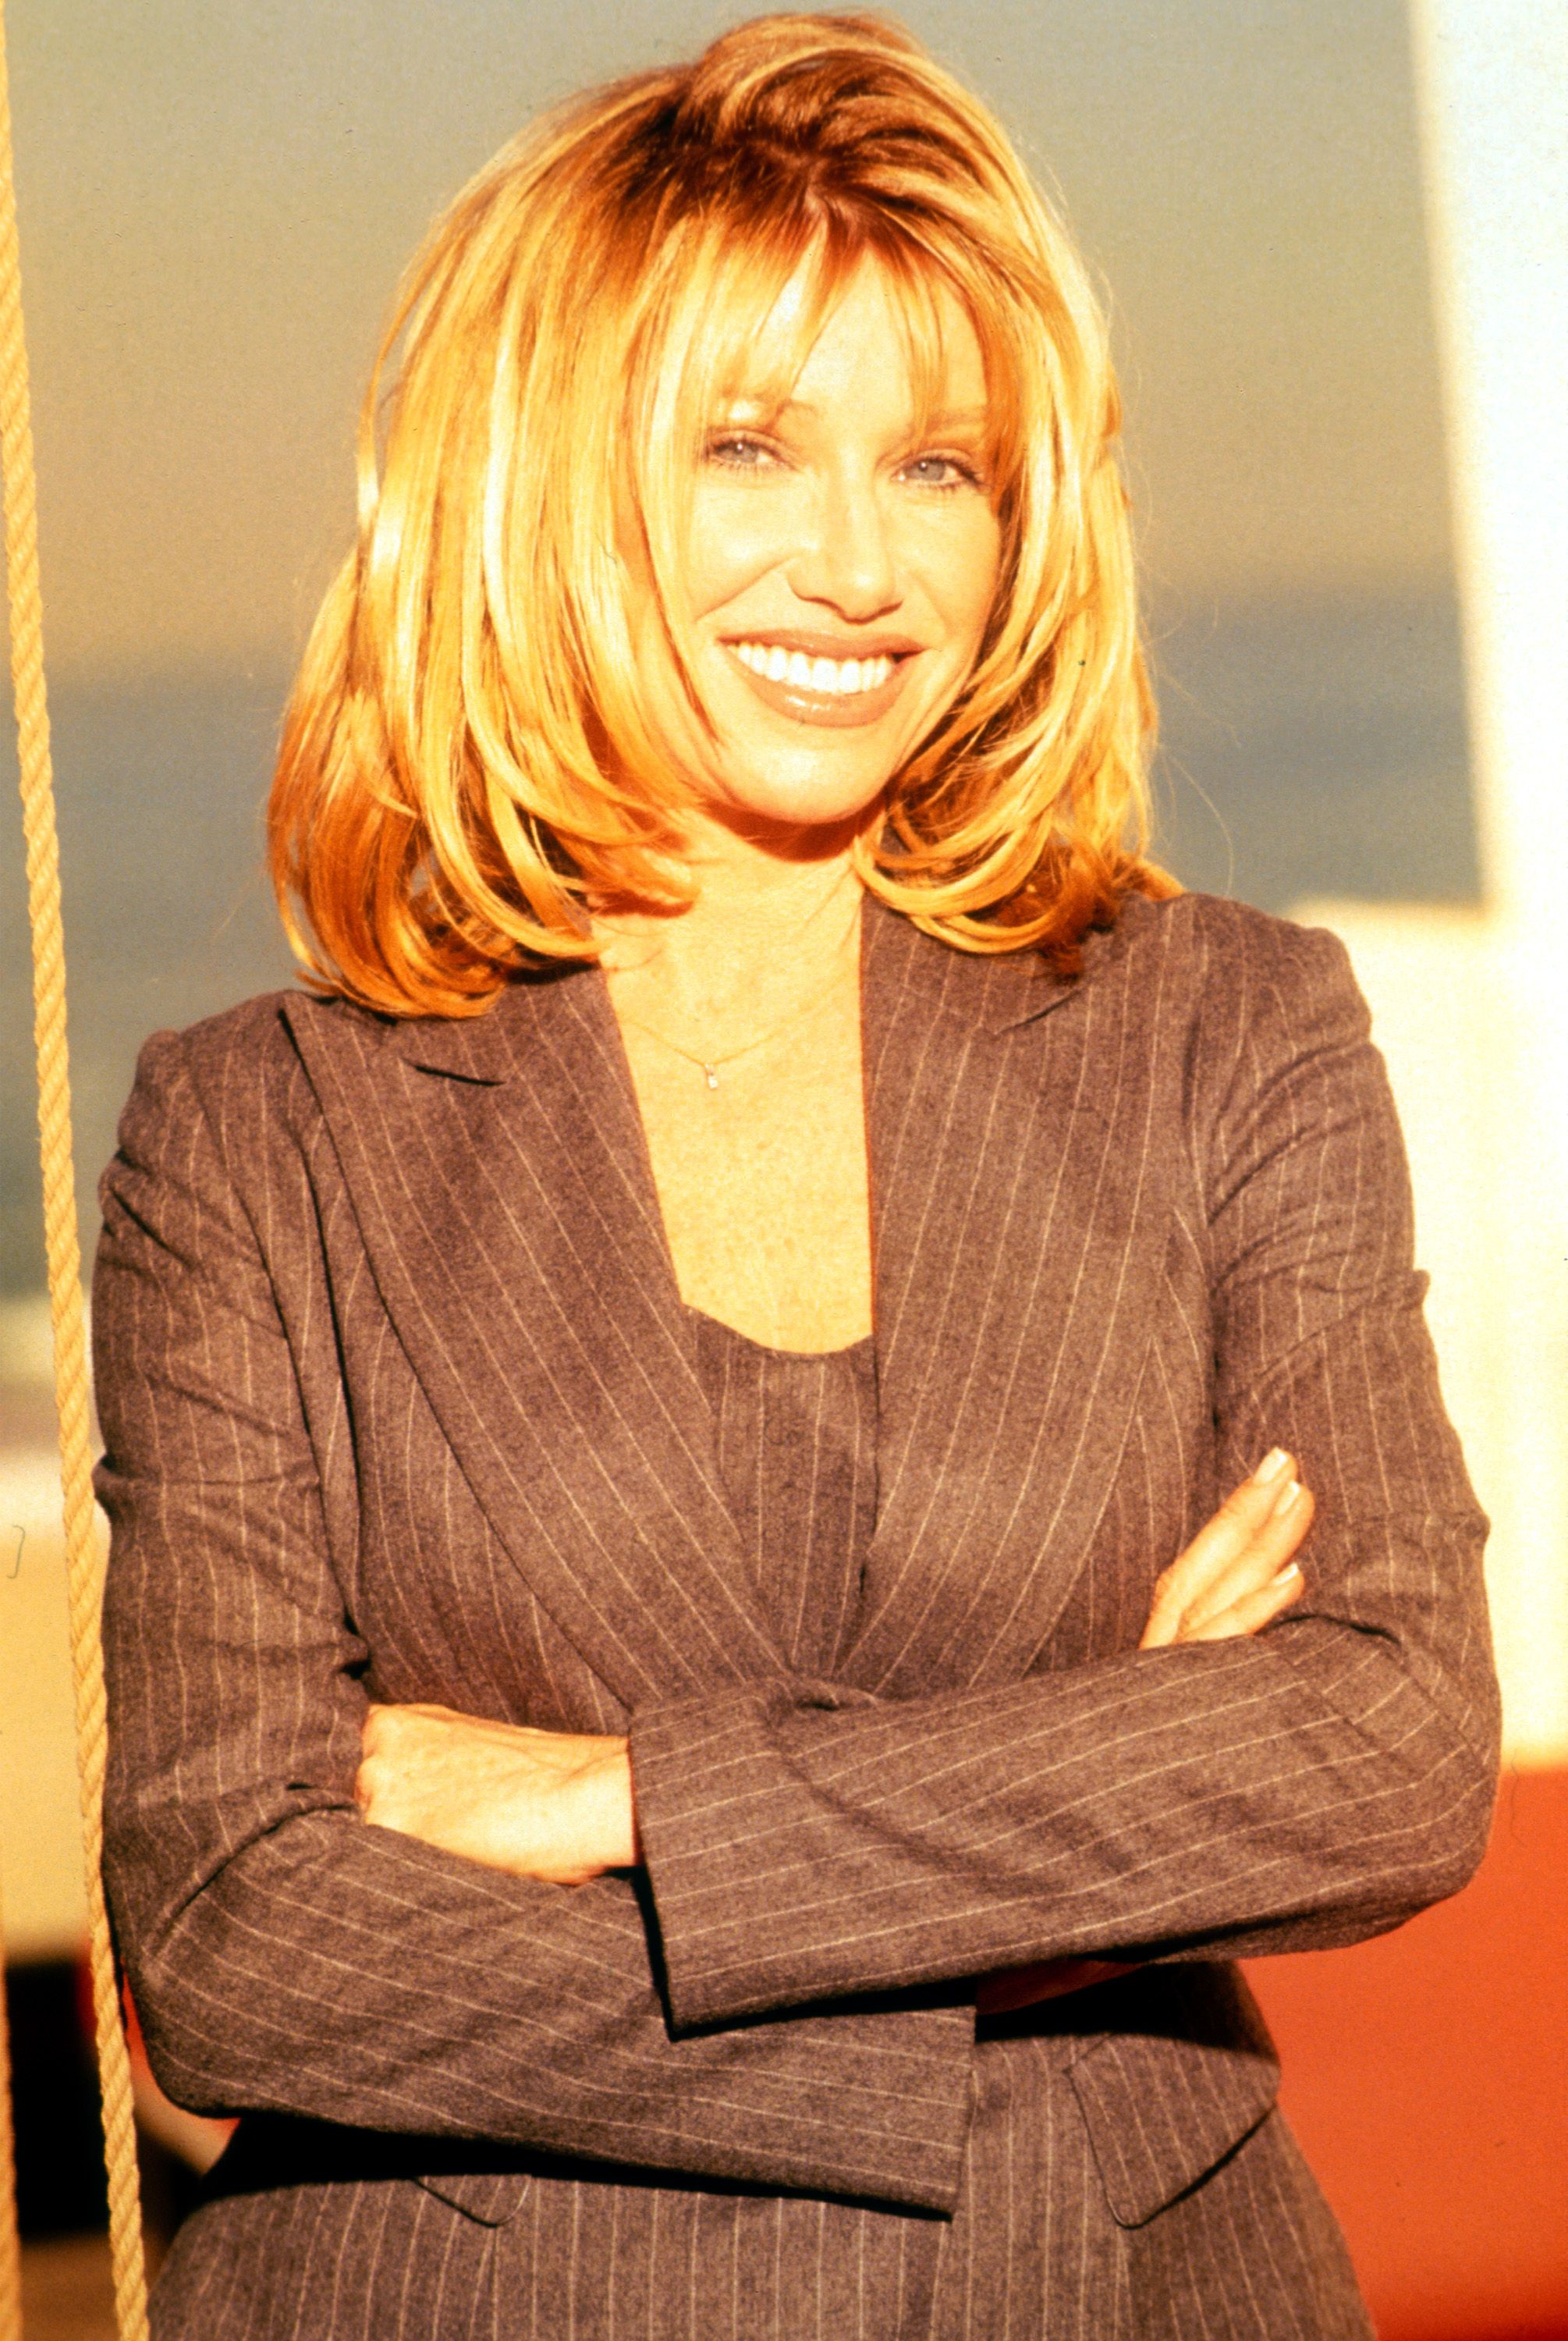 medium layered haircuts pictures suzanne somers hairstyles hair styles hair 3690 | 2167ac4939d3690e7bc705a06c9871c2